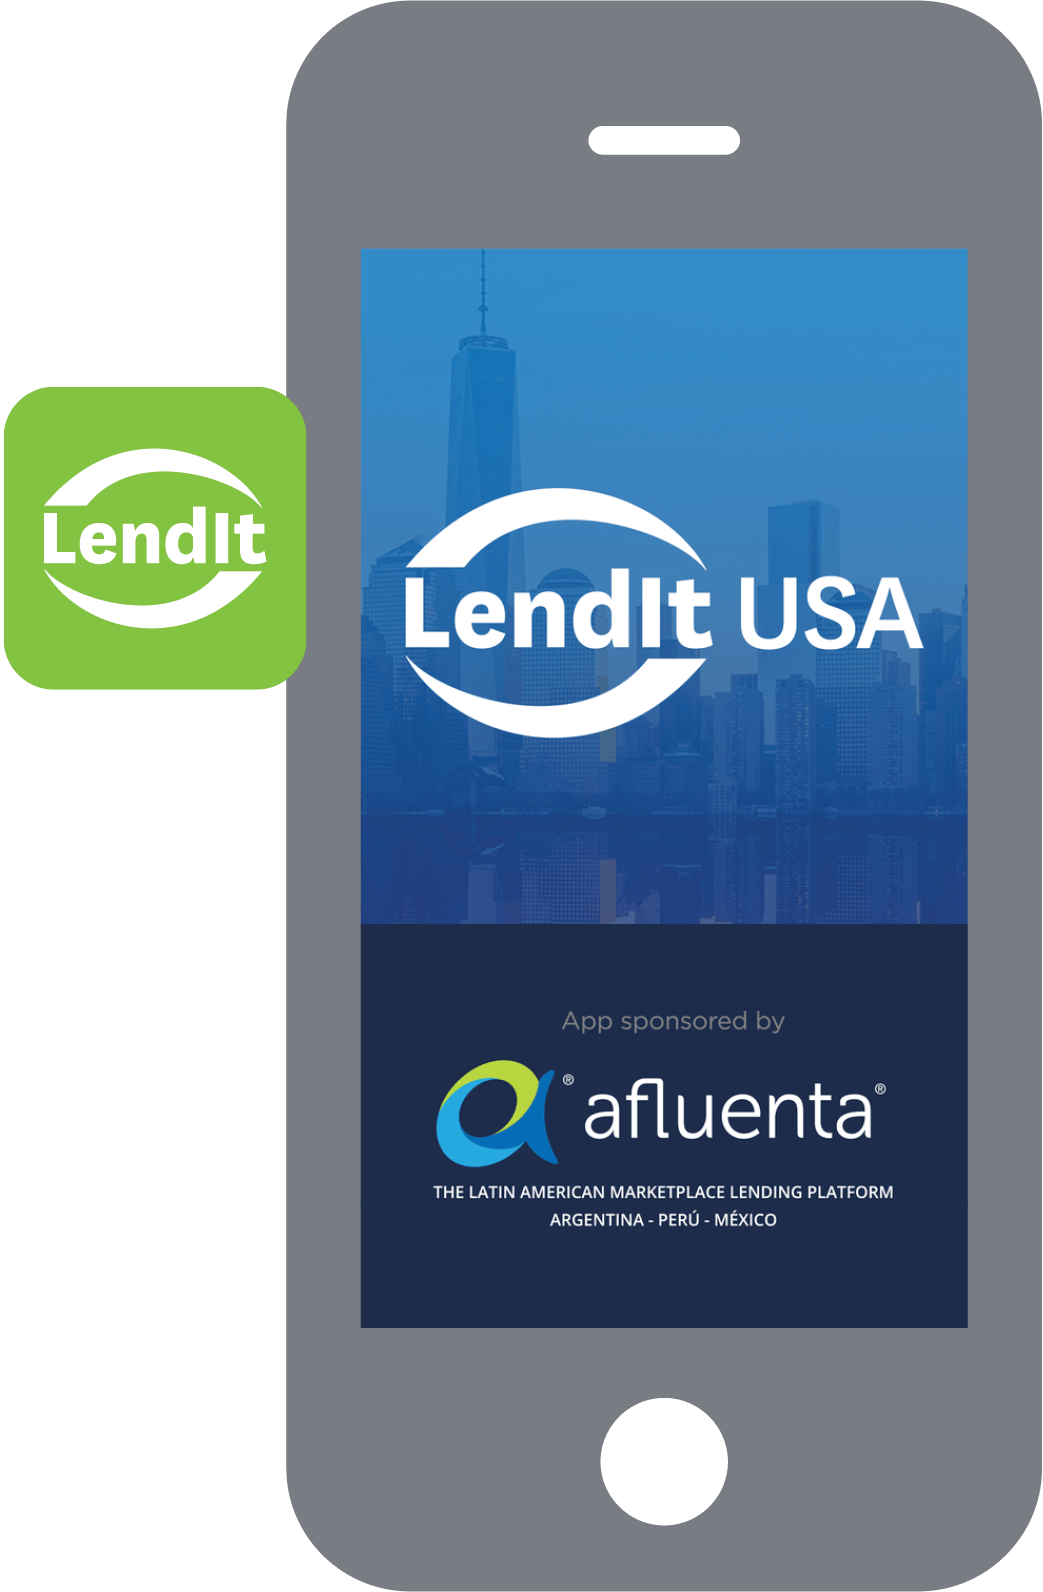 lendit app afluenta Sponsored